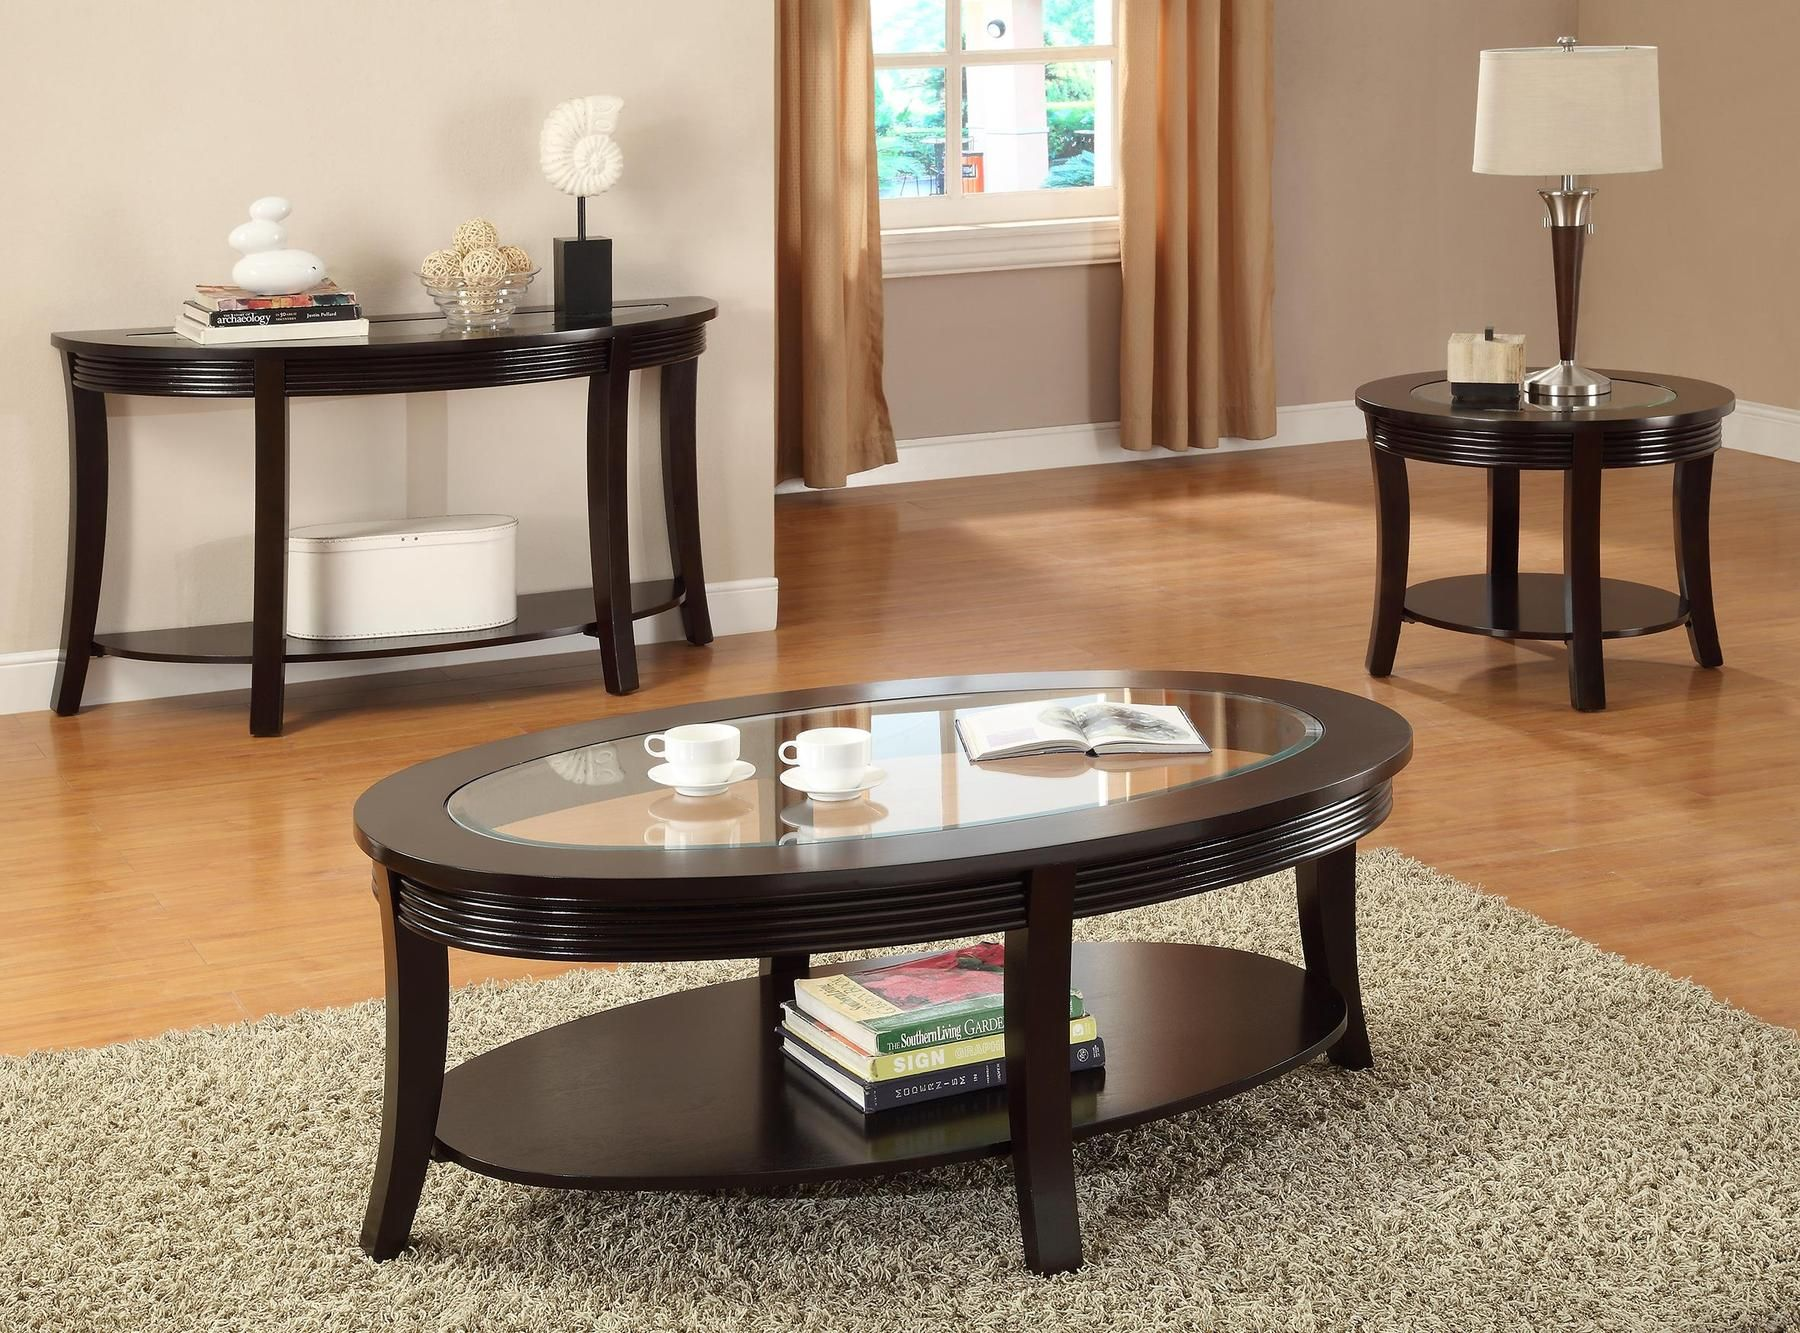 P6102 Coffee Table F6102 6103 6101 Poundex Coffee Tables Coffee Table Coffee Table Setting Table [ 1333 x 1800 Pixel ]